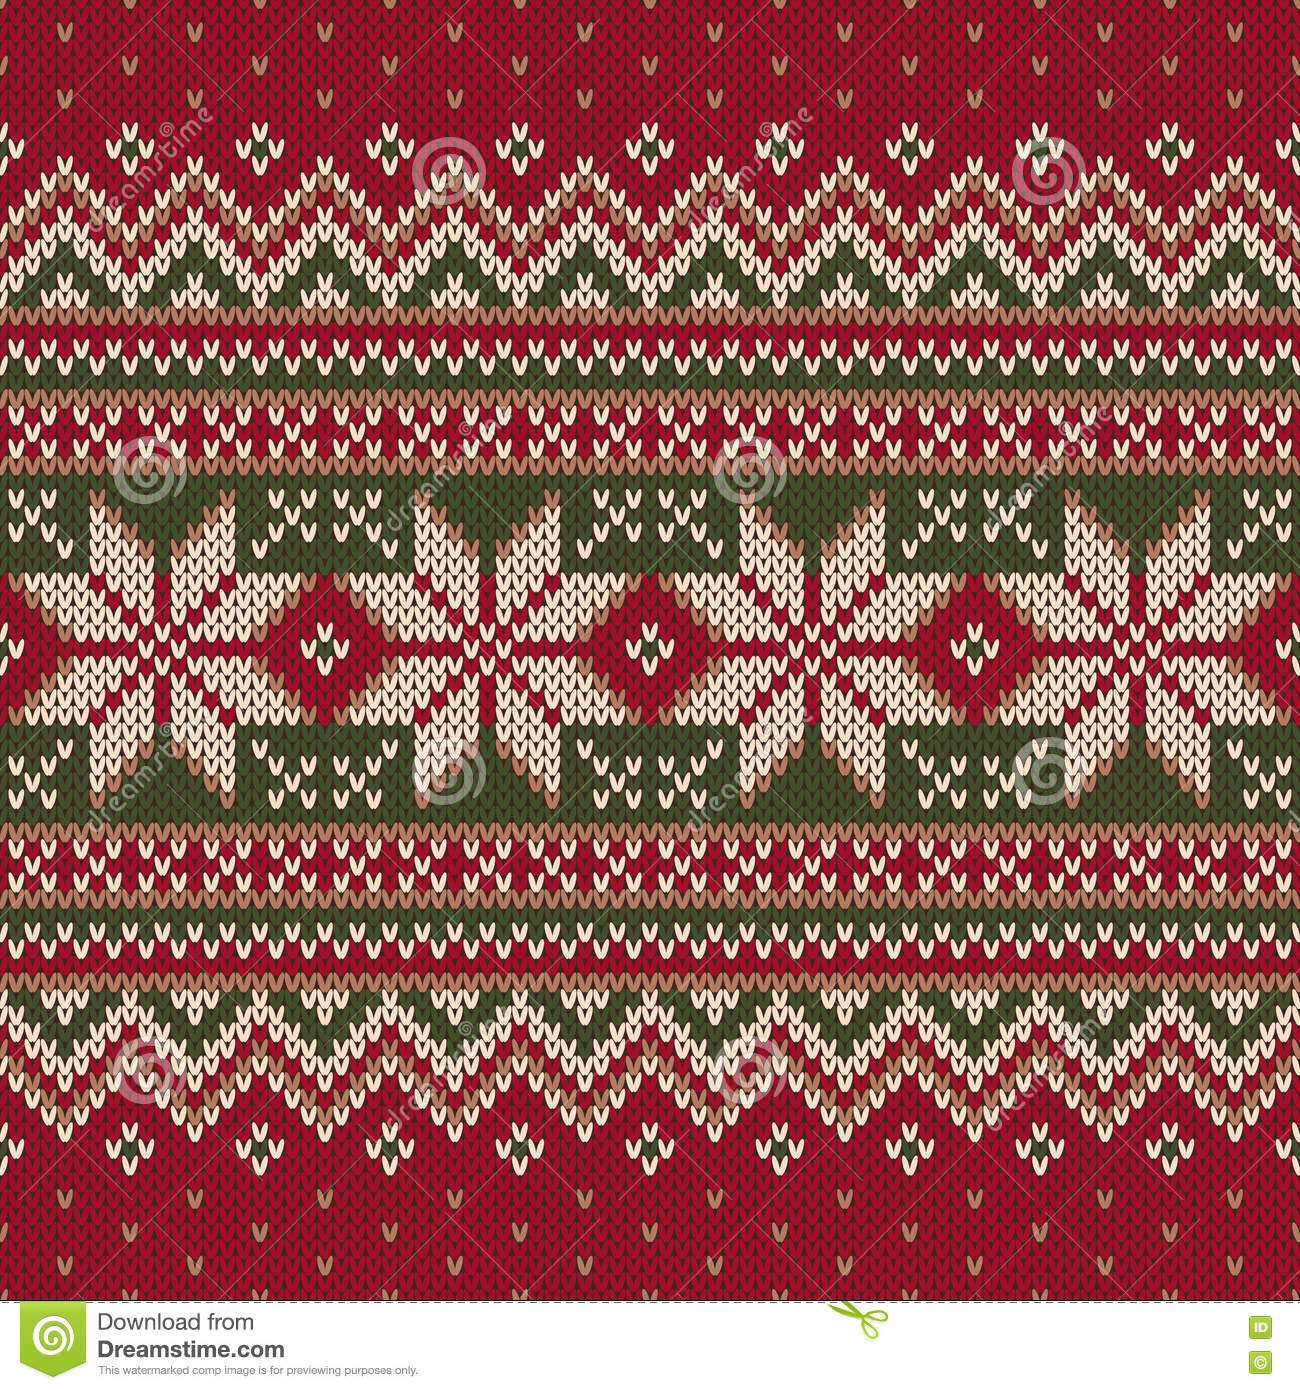 Best Of Sweater Pattern Fair isle Knit Sweater Jeans and Boots Fair isle Pattern Of Top 42 Photos Fair isle Pattern